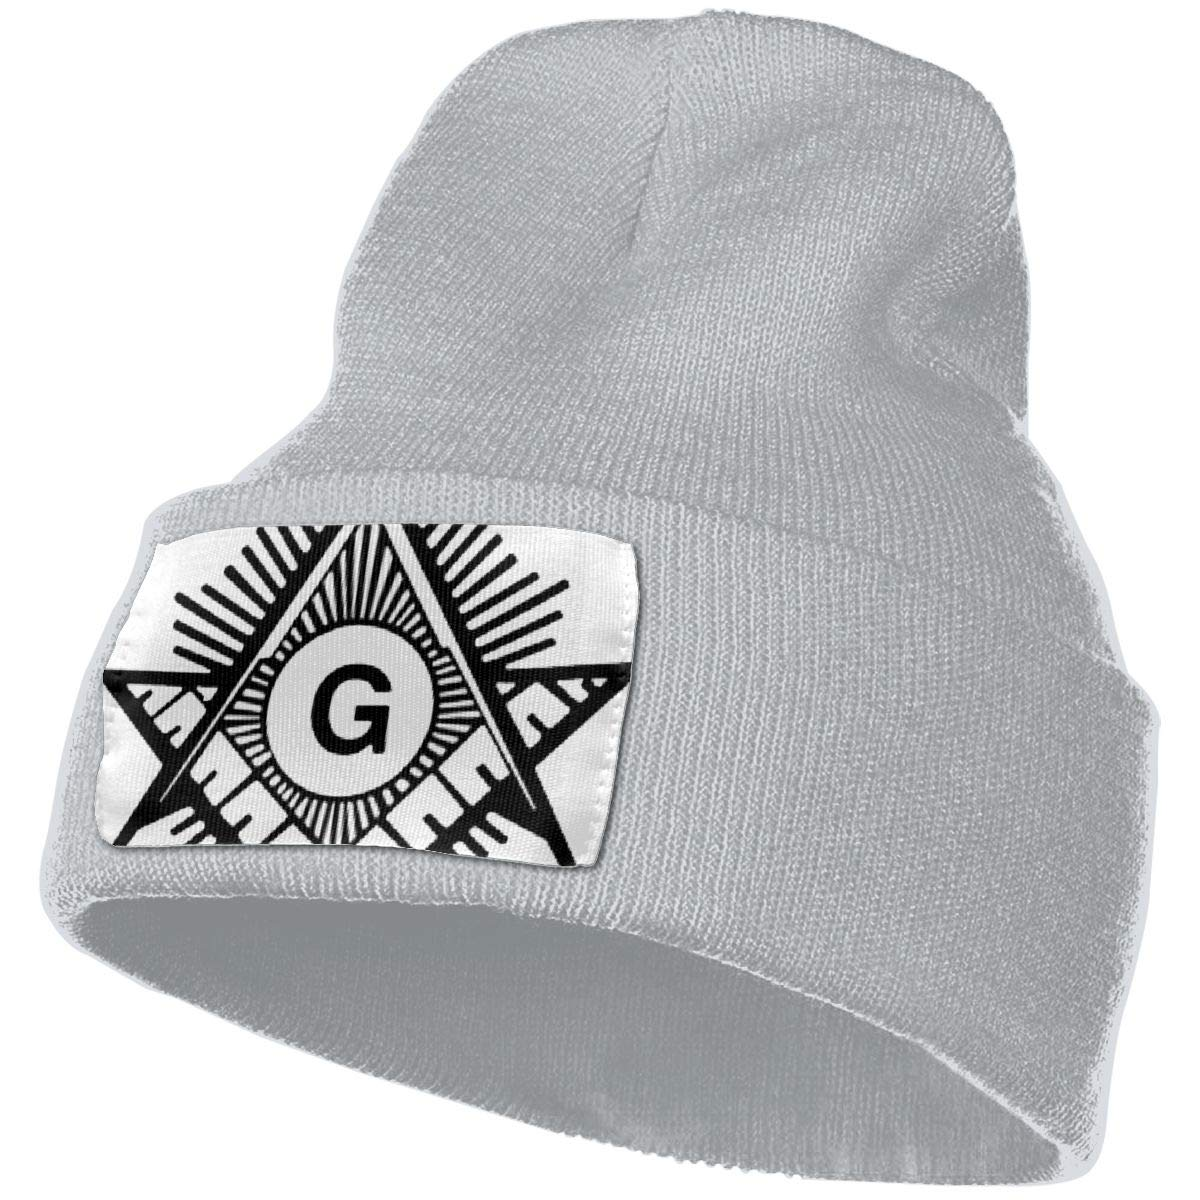 Masonic Compass Hat for Men and Women Winter Warm Hats Knit Slouchy Thick Skull Cap